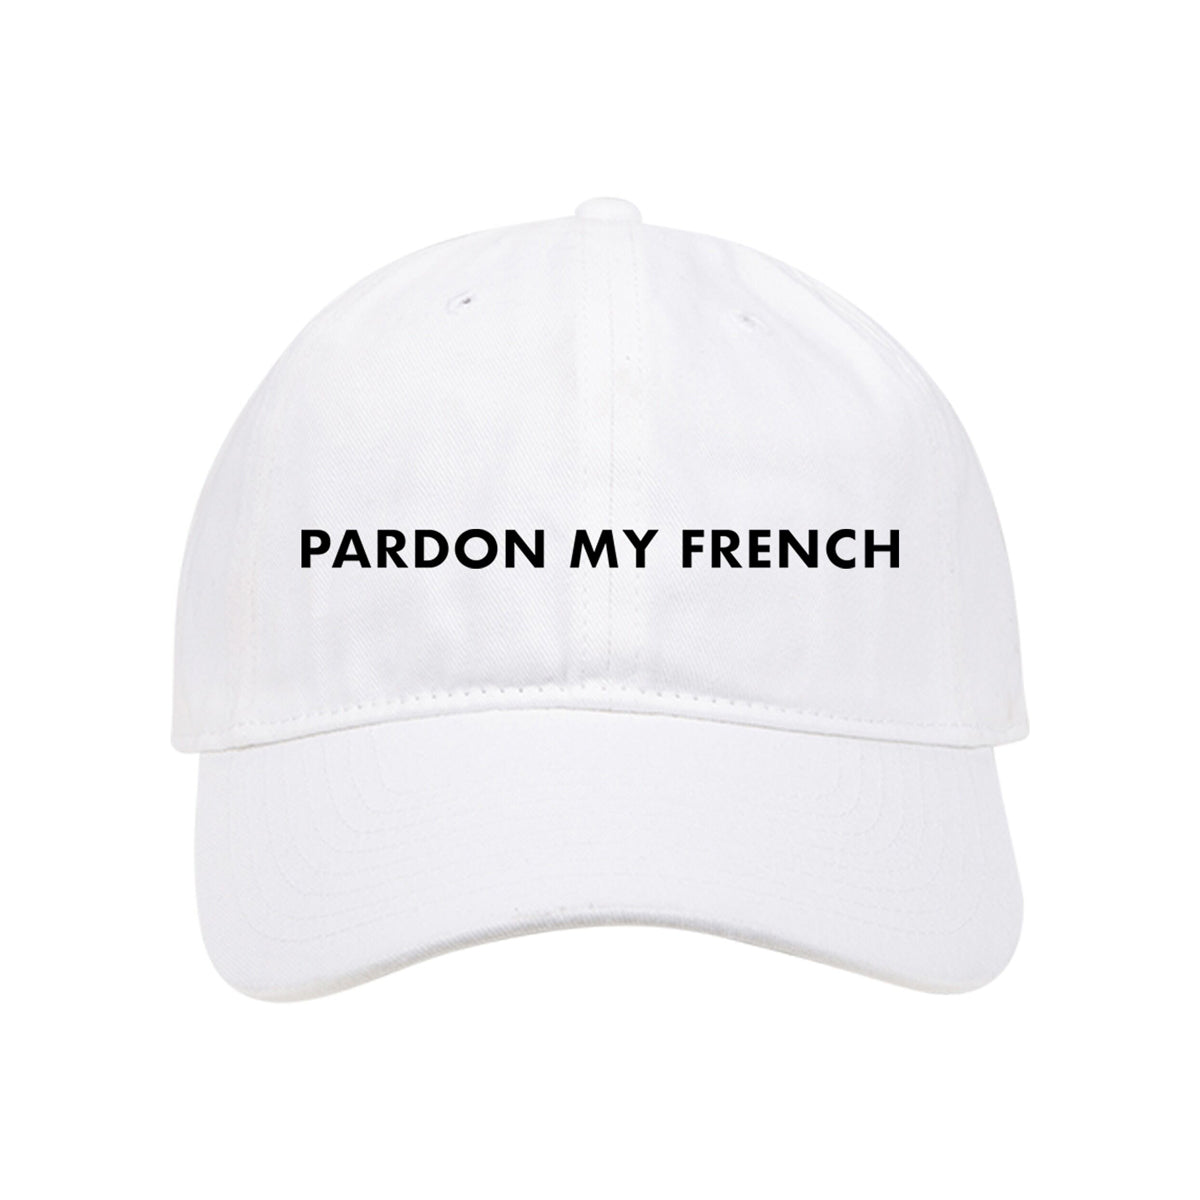 PARDON MY FRENCH WHITE CAP